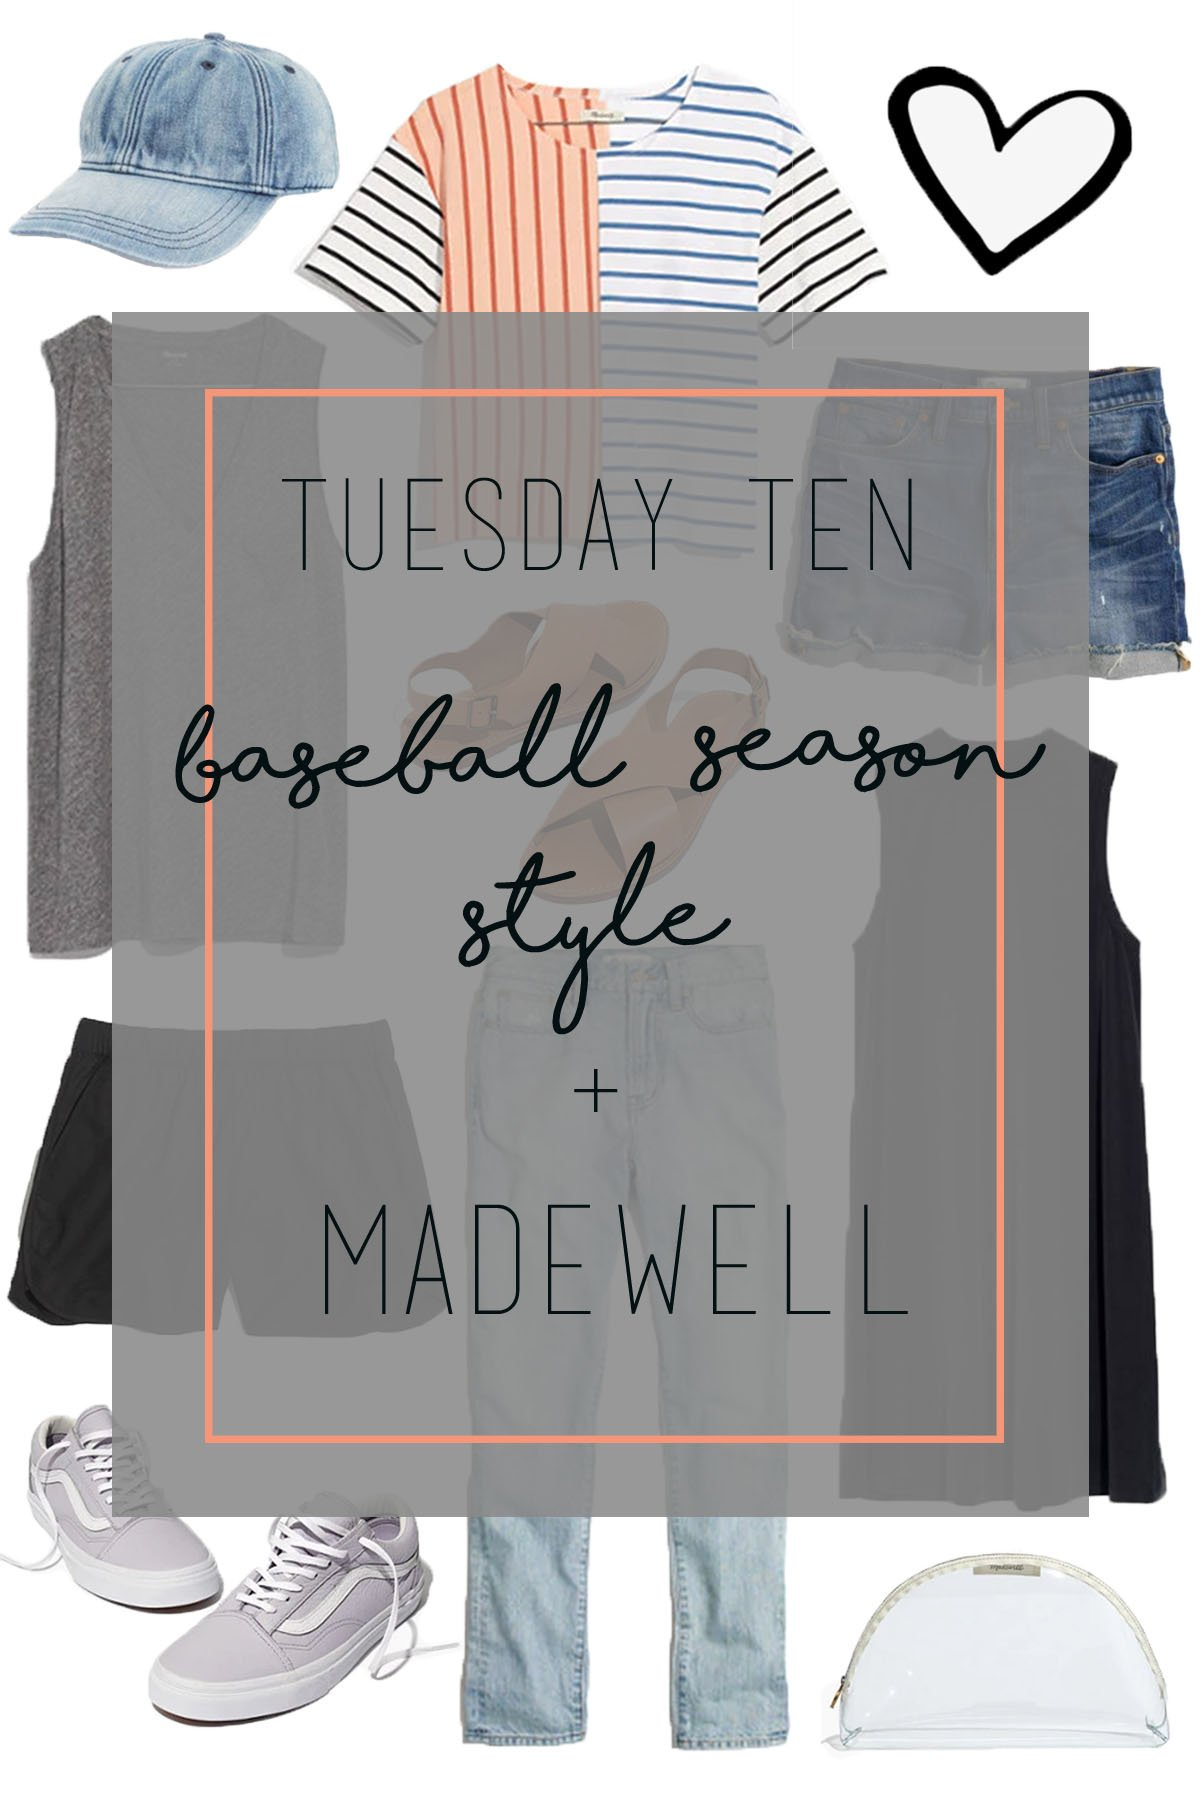 baseball season style including spring tees, dresses, and shoes